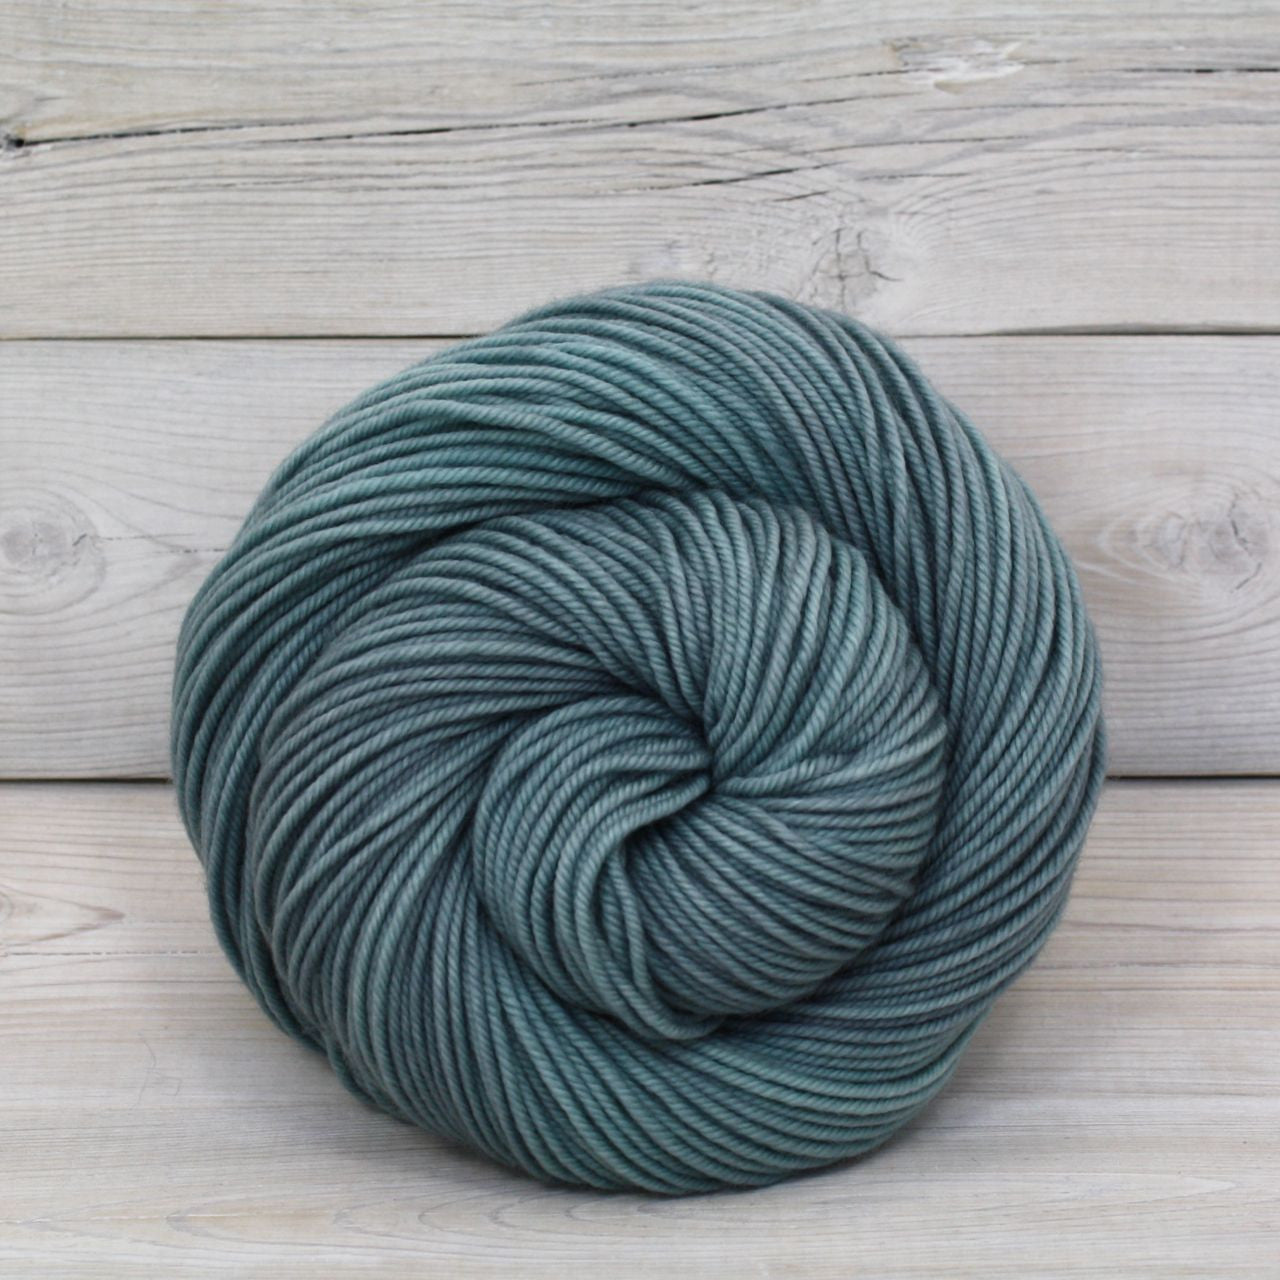 Colorway: Harbor | Dyed to Order Yarn